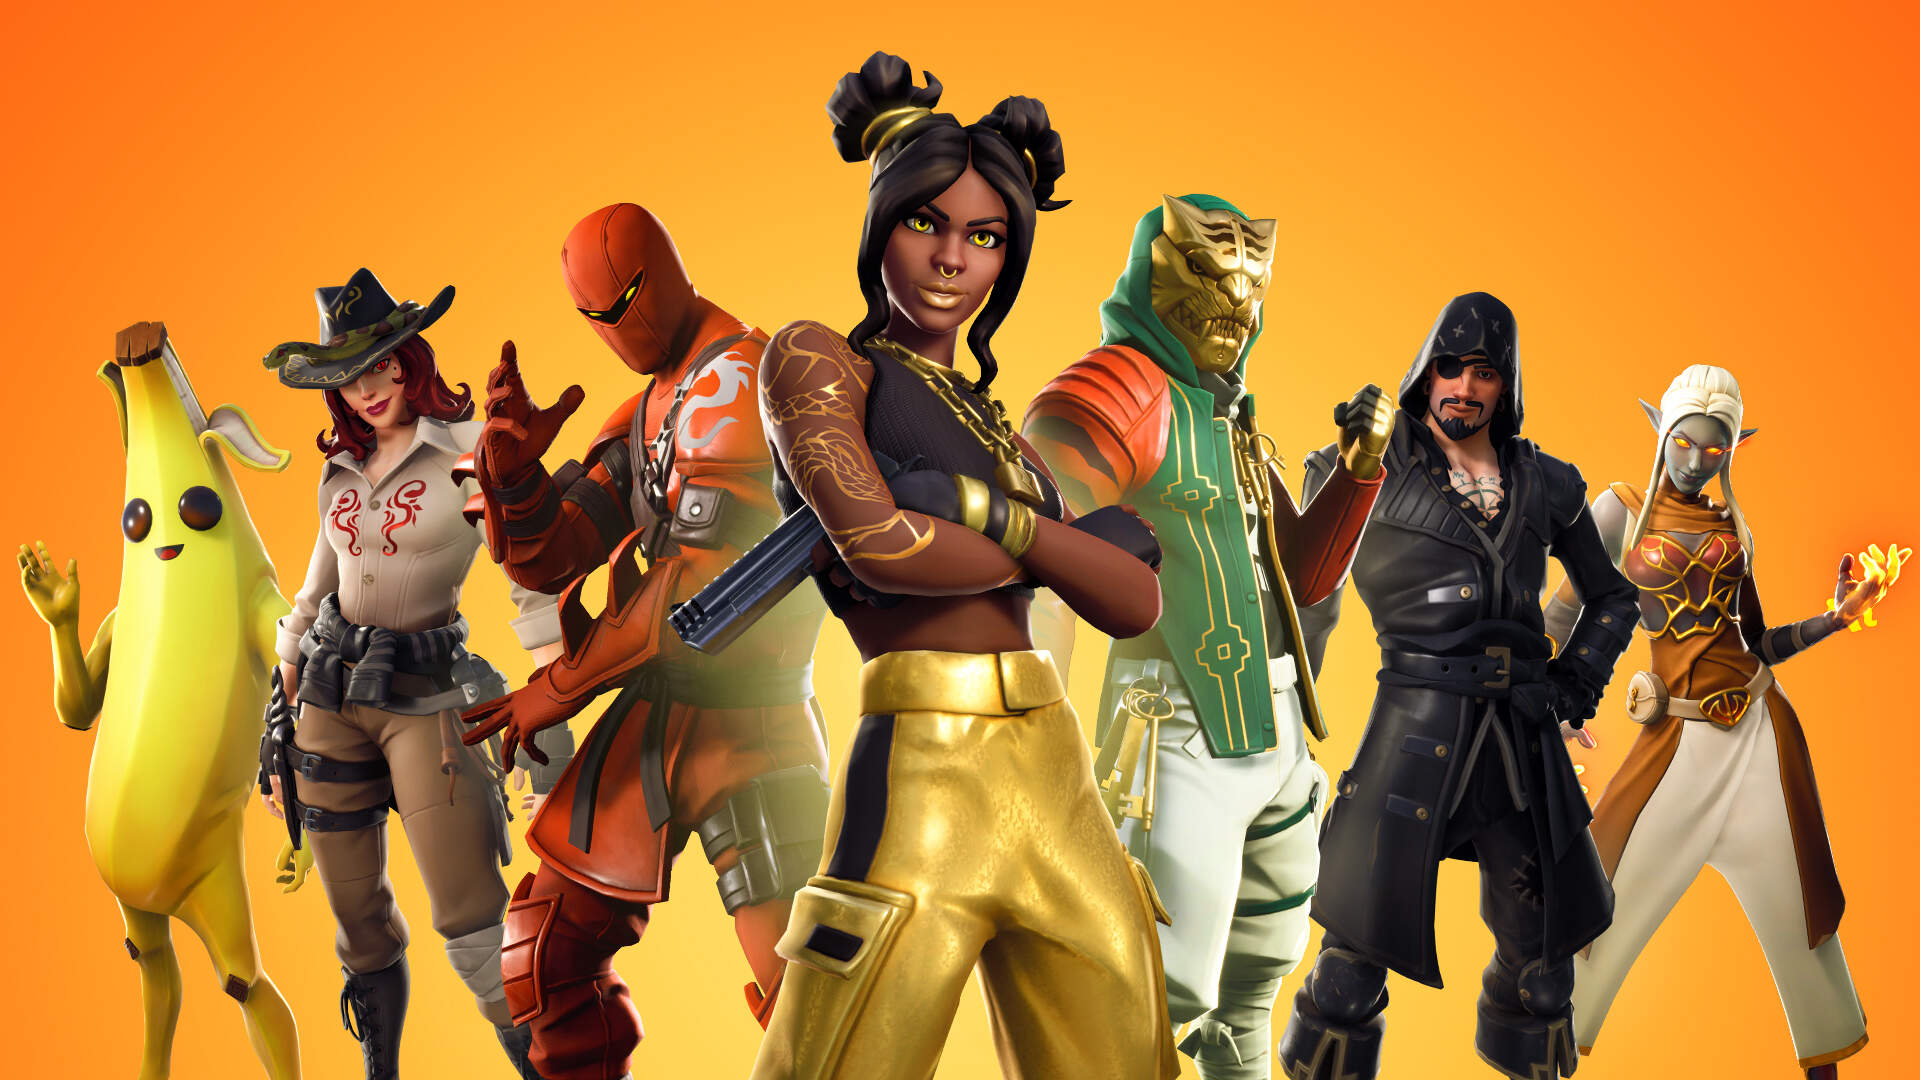 Fortnite Week 8 Challenges - How to Complete All Season 8, Week 8 Battle Pass Challenges